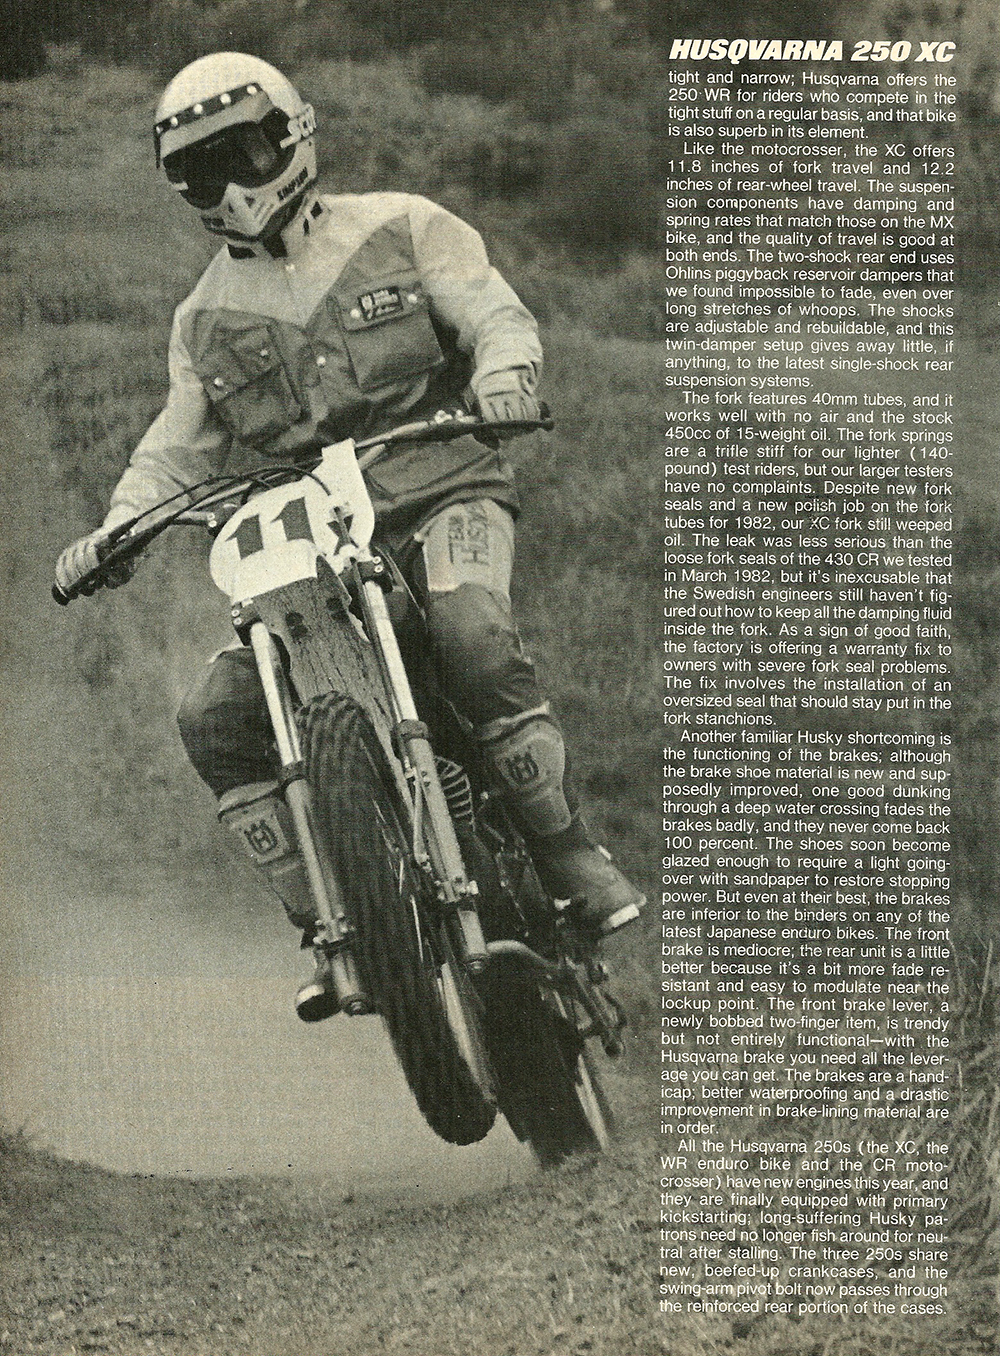 1982 Husqvarna 250 XC road test 2.jpg